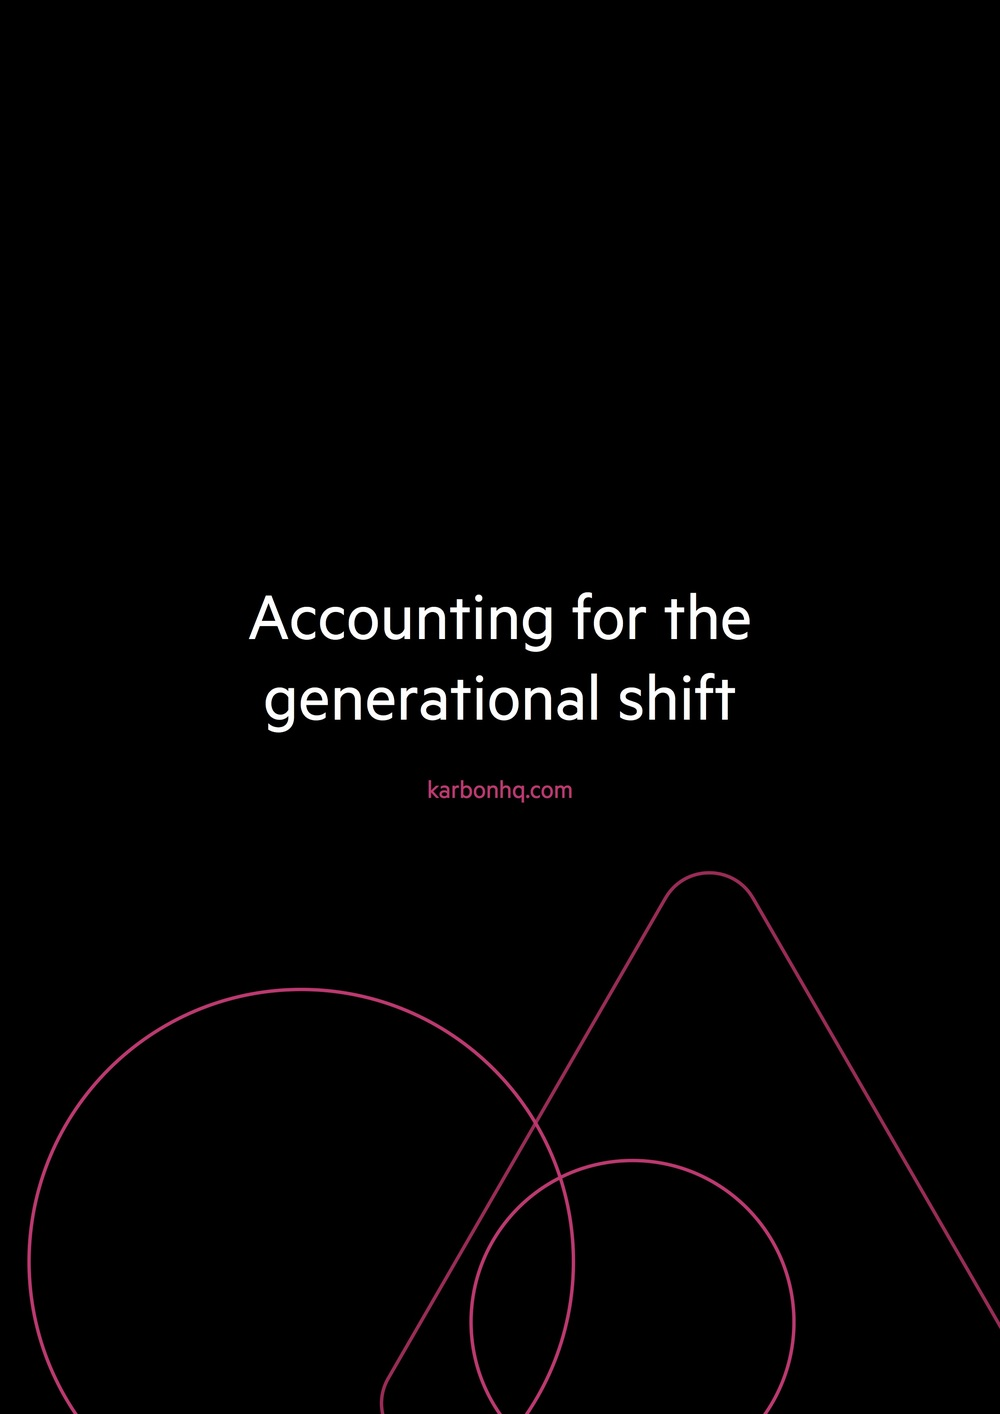 accounting-for-the-generational-shift